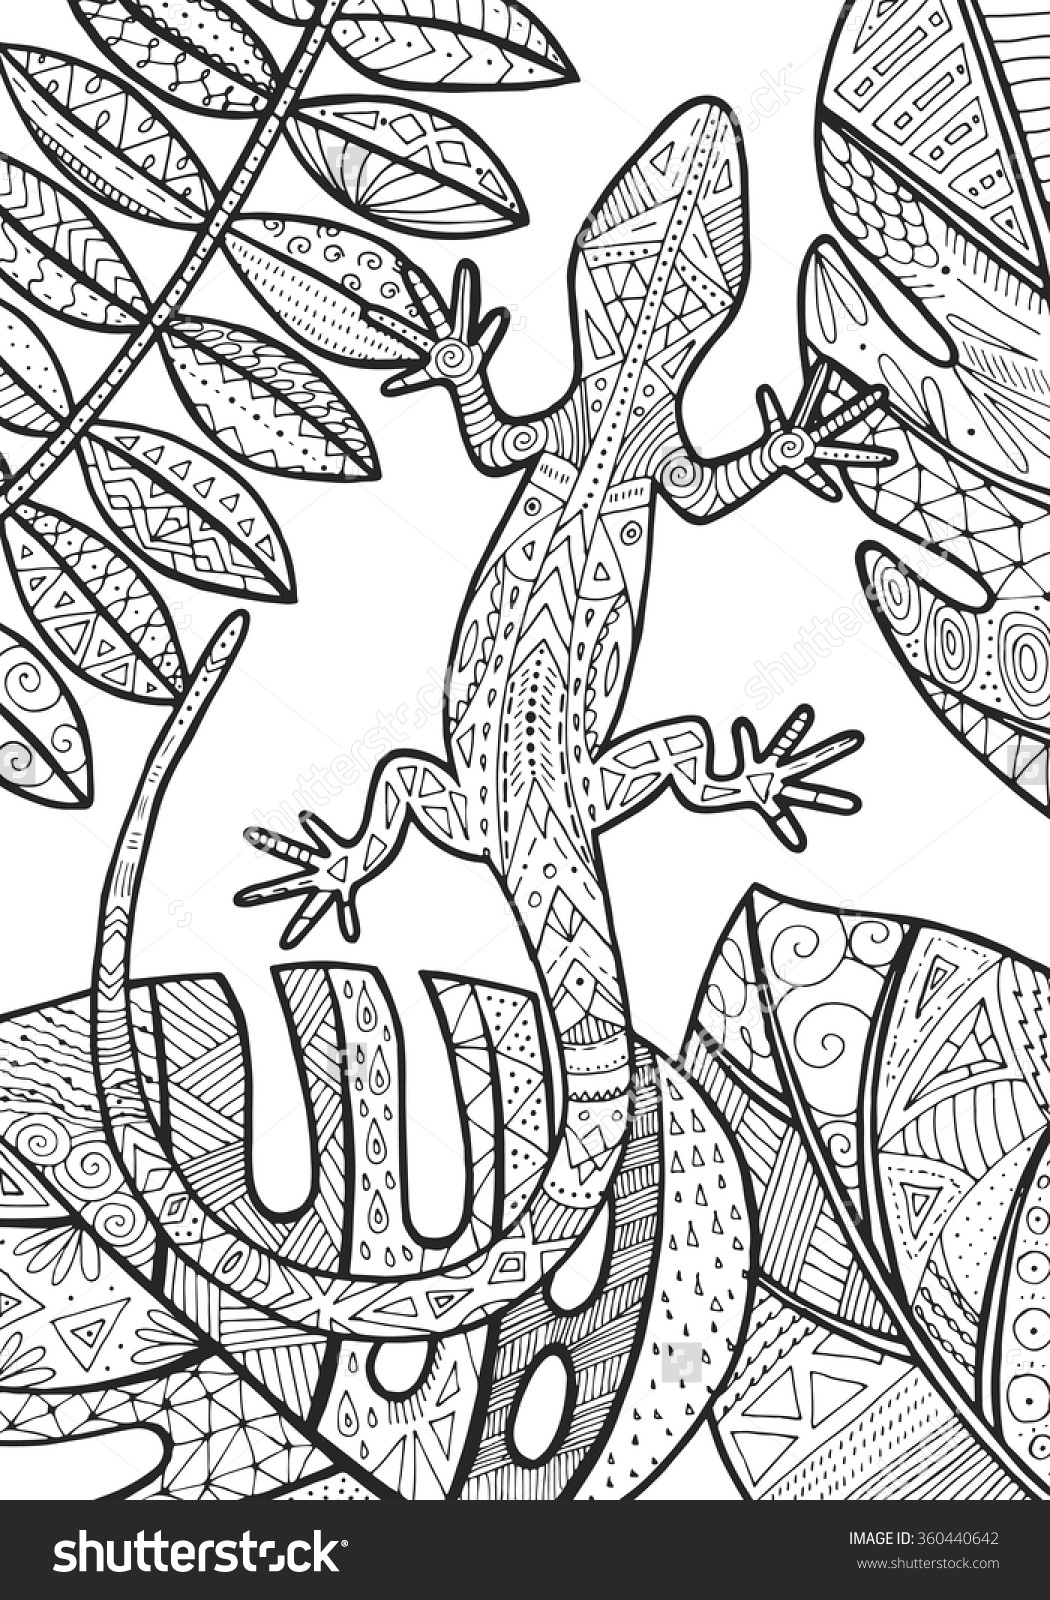 tropical pictures to color tropical plant coloring pages for adults vogue coloring book tropical pictures color to